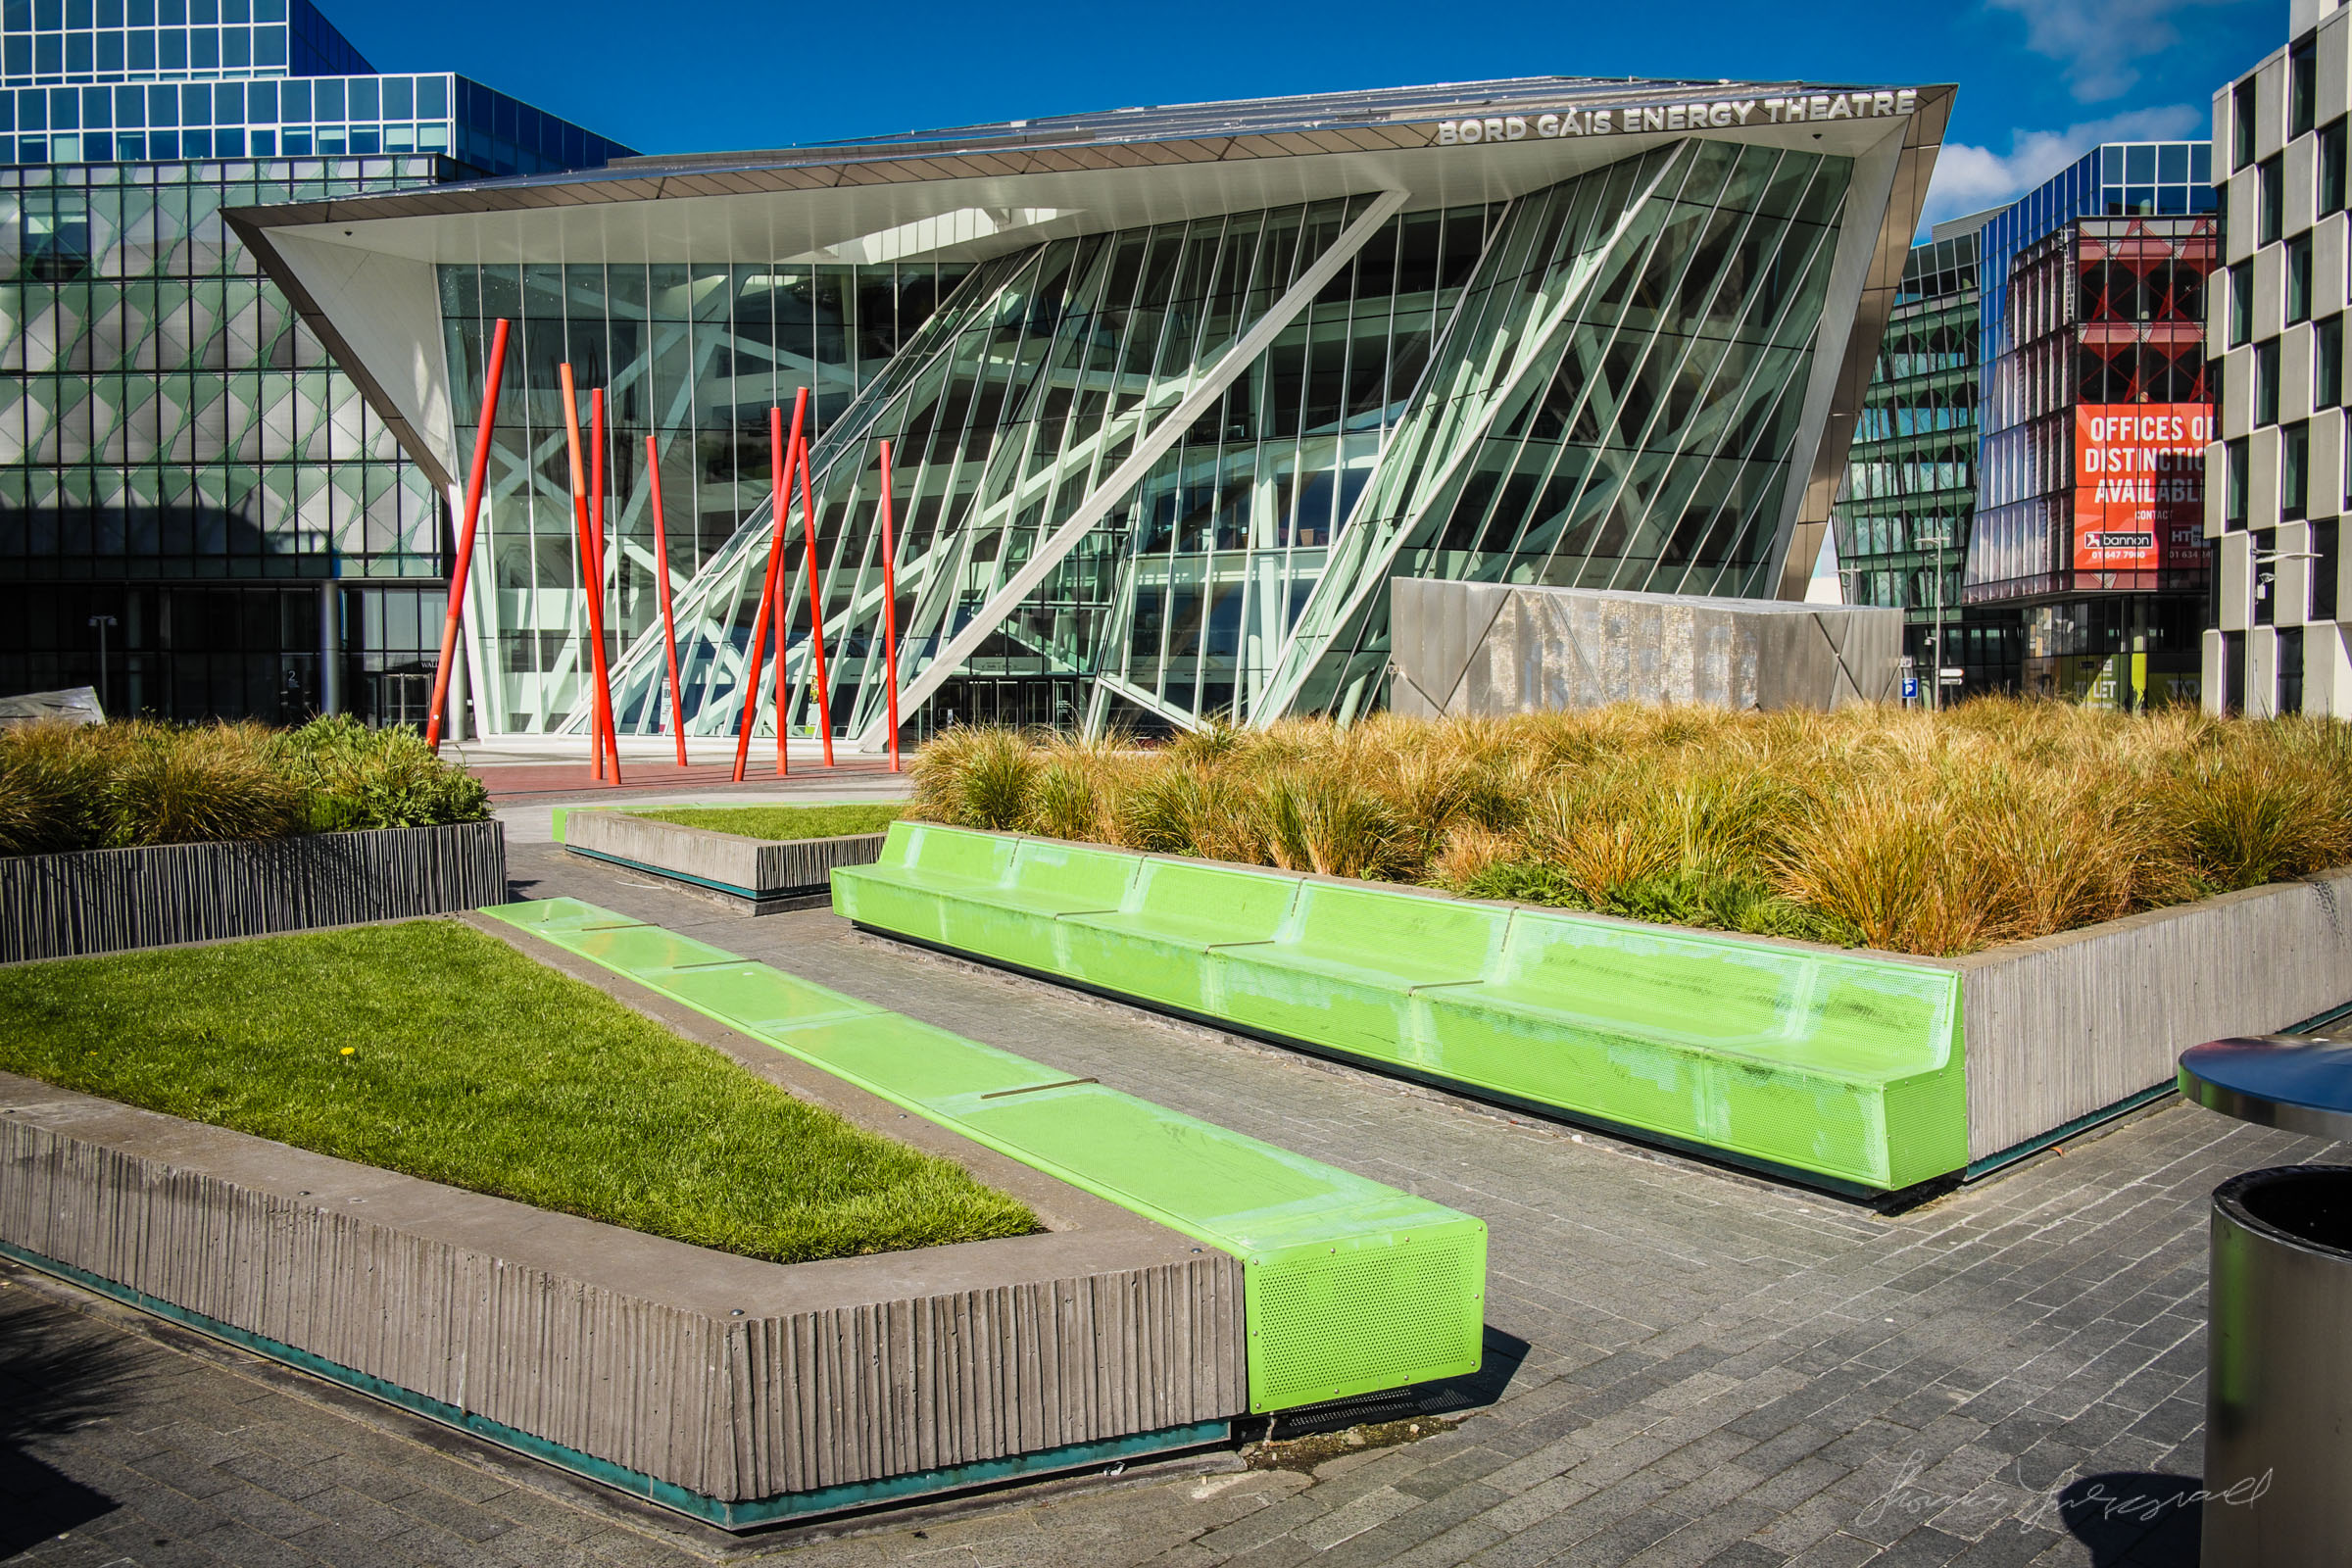 Green Benches in front of the Bord Gáis Energy theatre